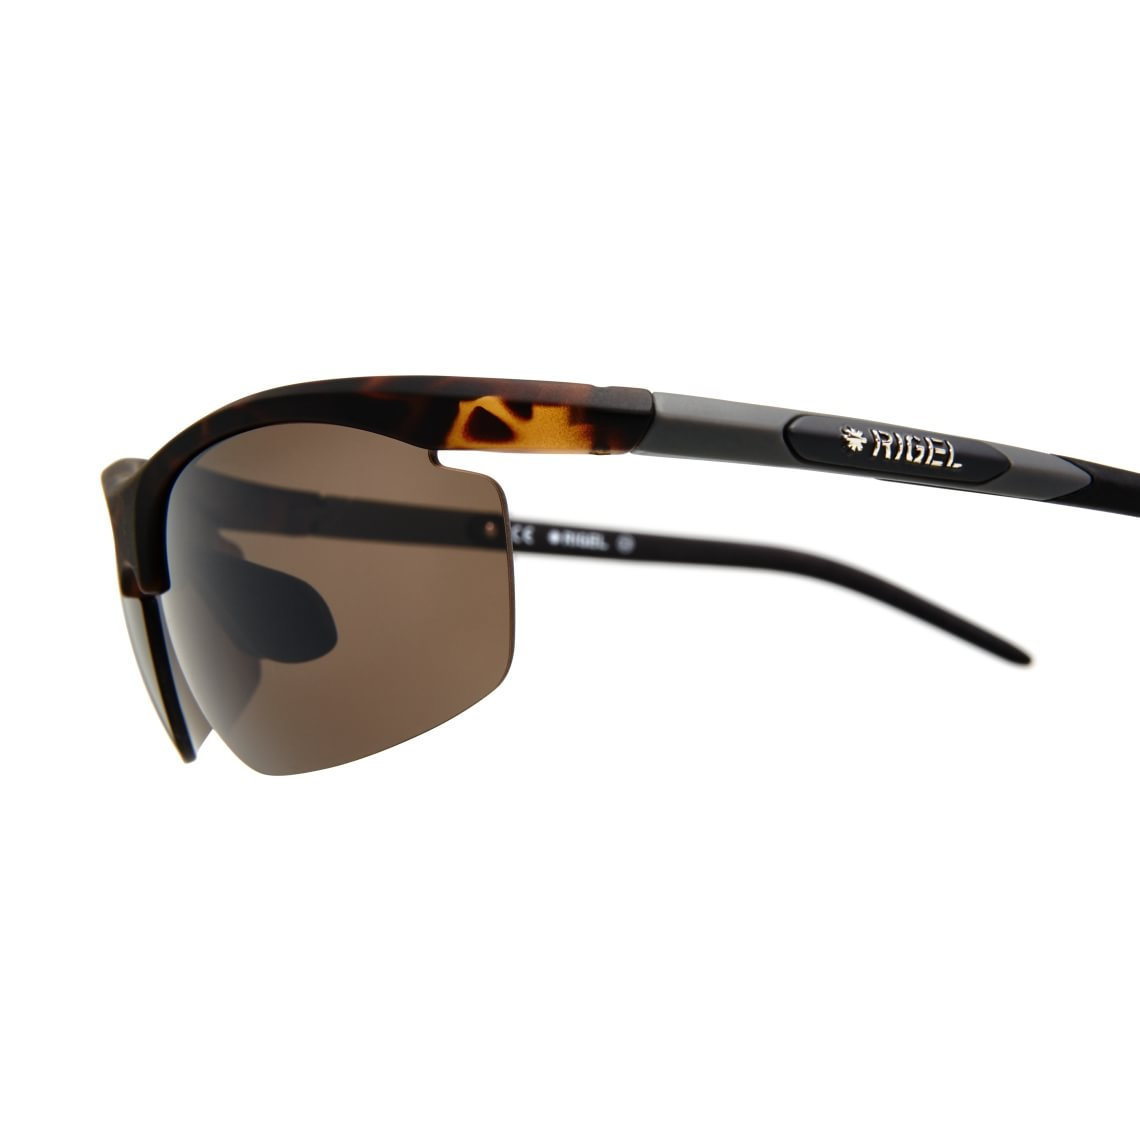 RIGEL Polarized Brown Hero C12 6417